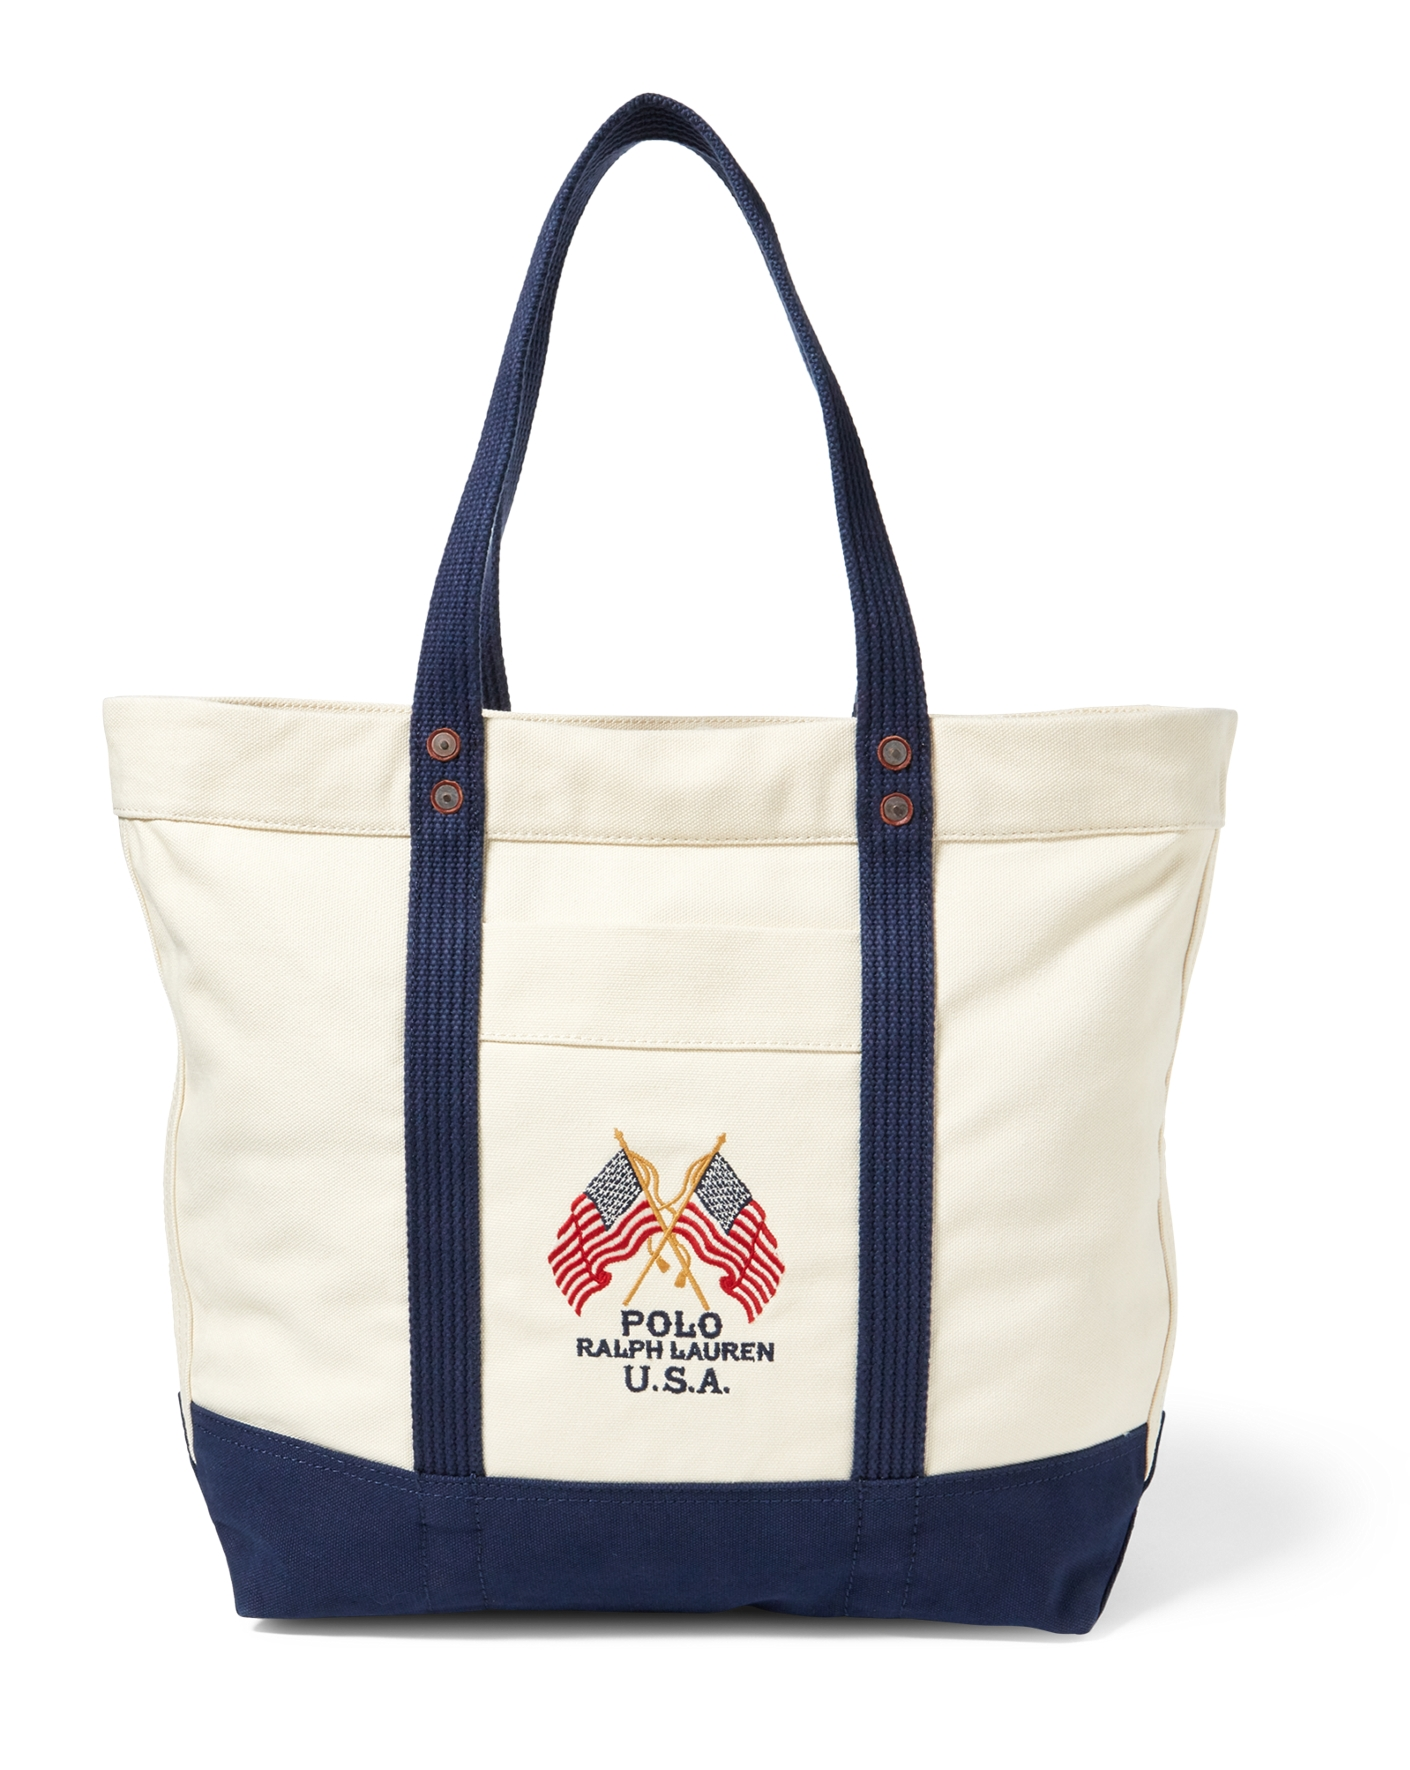 Flag Canvas Tote - Totes Bags & Leather Goods - RalphLauren.com